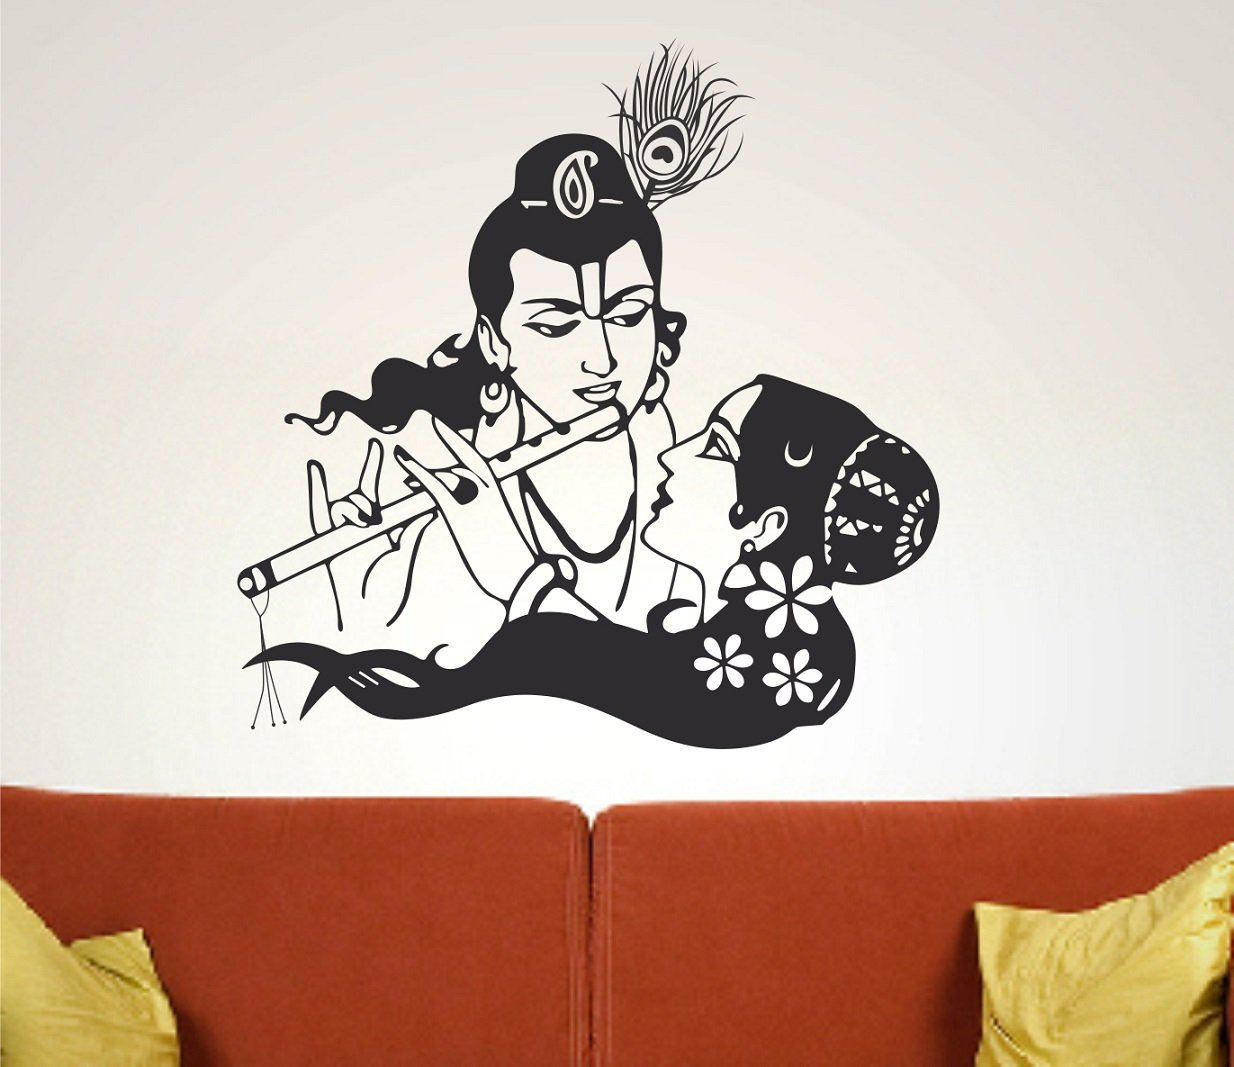 Wall stickers radha krishna - Buy Asmi Collections Wall Stickers Beautiful God Radha Krishna Online At Low Prices In India Amazon In